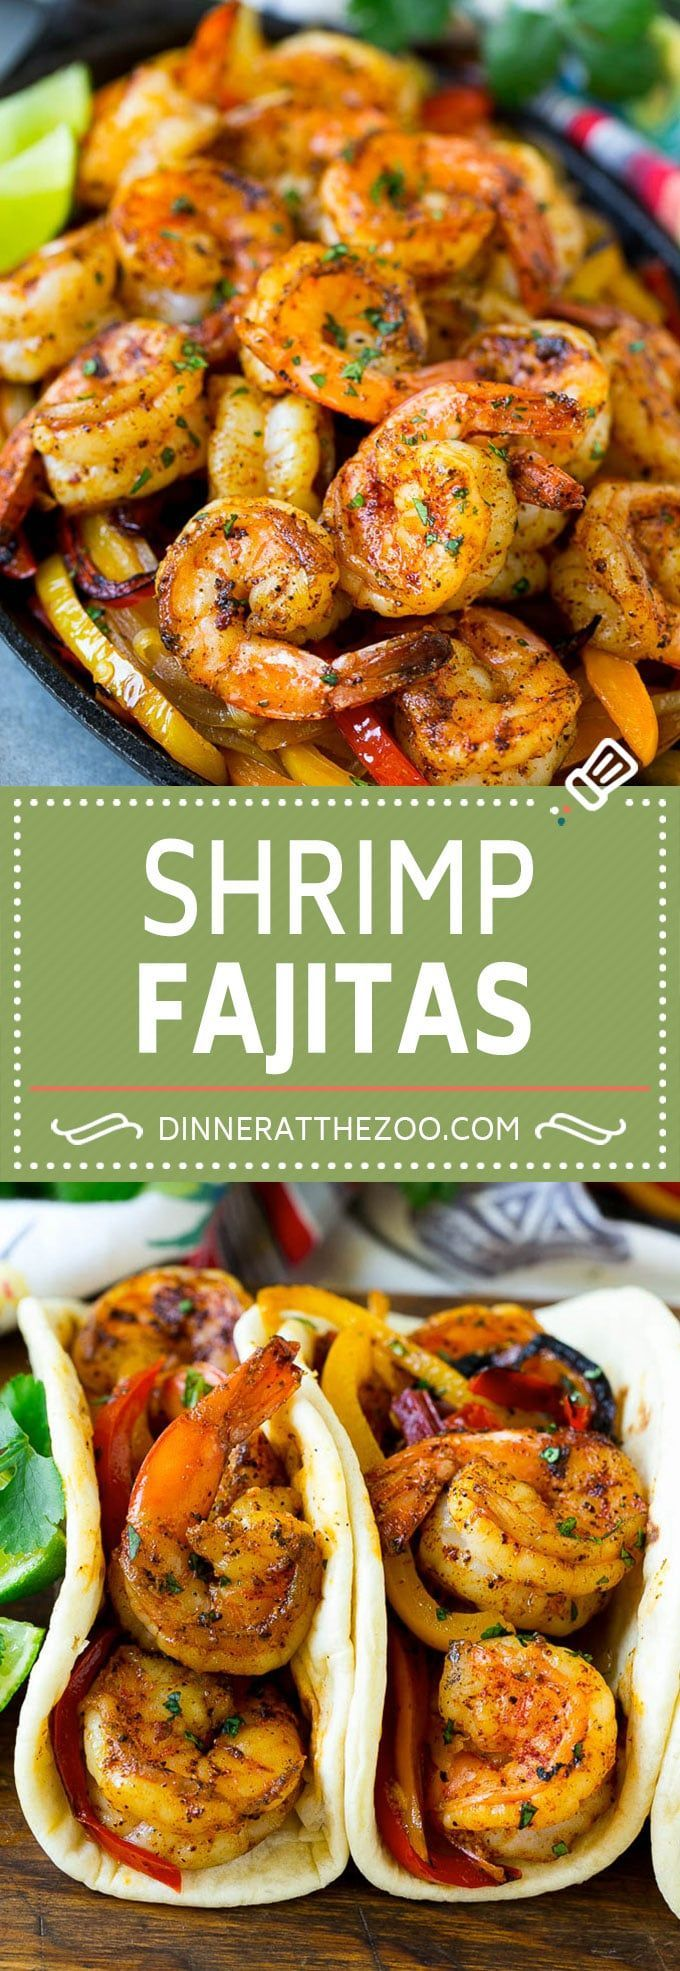 Shrimp Fajitas Recipe | Mexican Shrimp | Mexican Fajitas #fajitas #shrimp #mexic... - Dinner at the Zoo Recipes - #dinner #Fajitas #mexic #Mexican #Recipe #Recipes #Shrimp #Zoo #seafooddishes